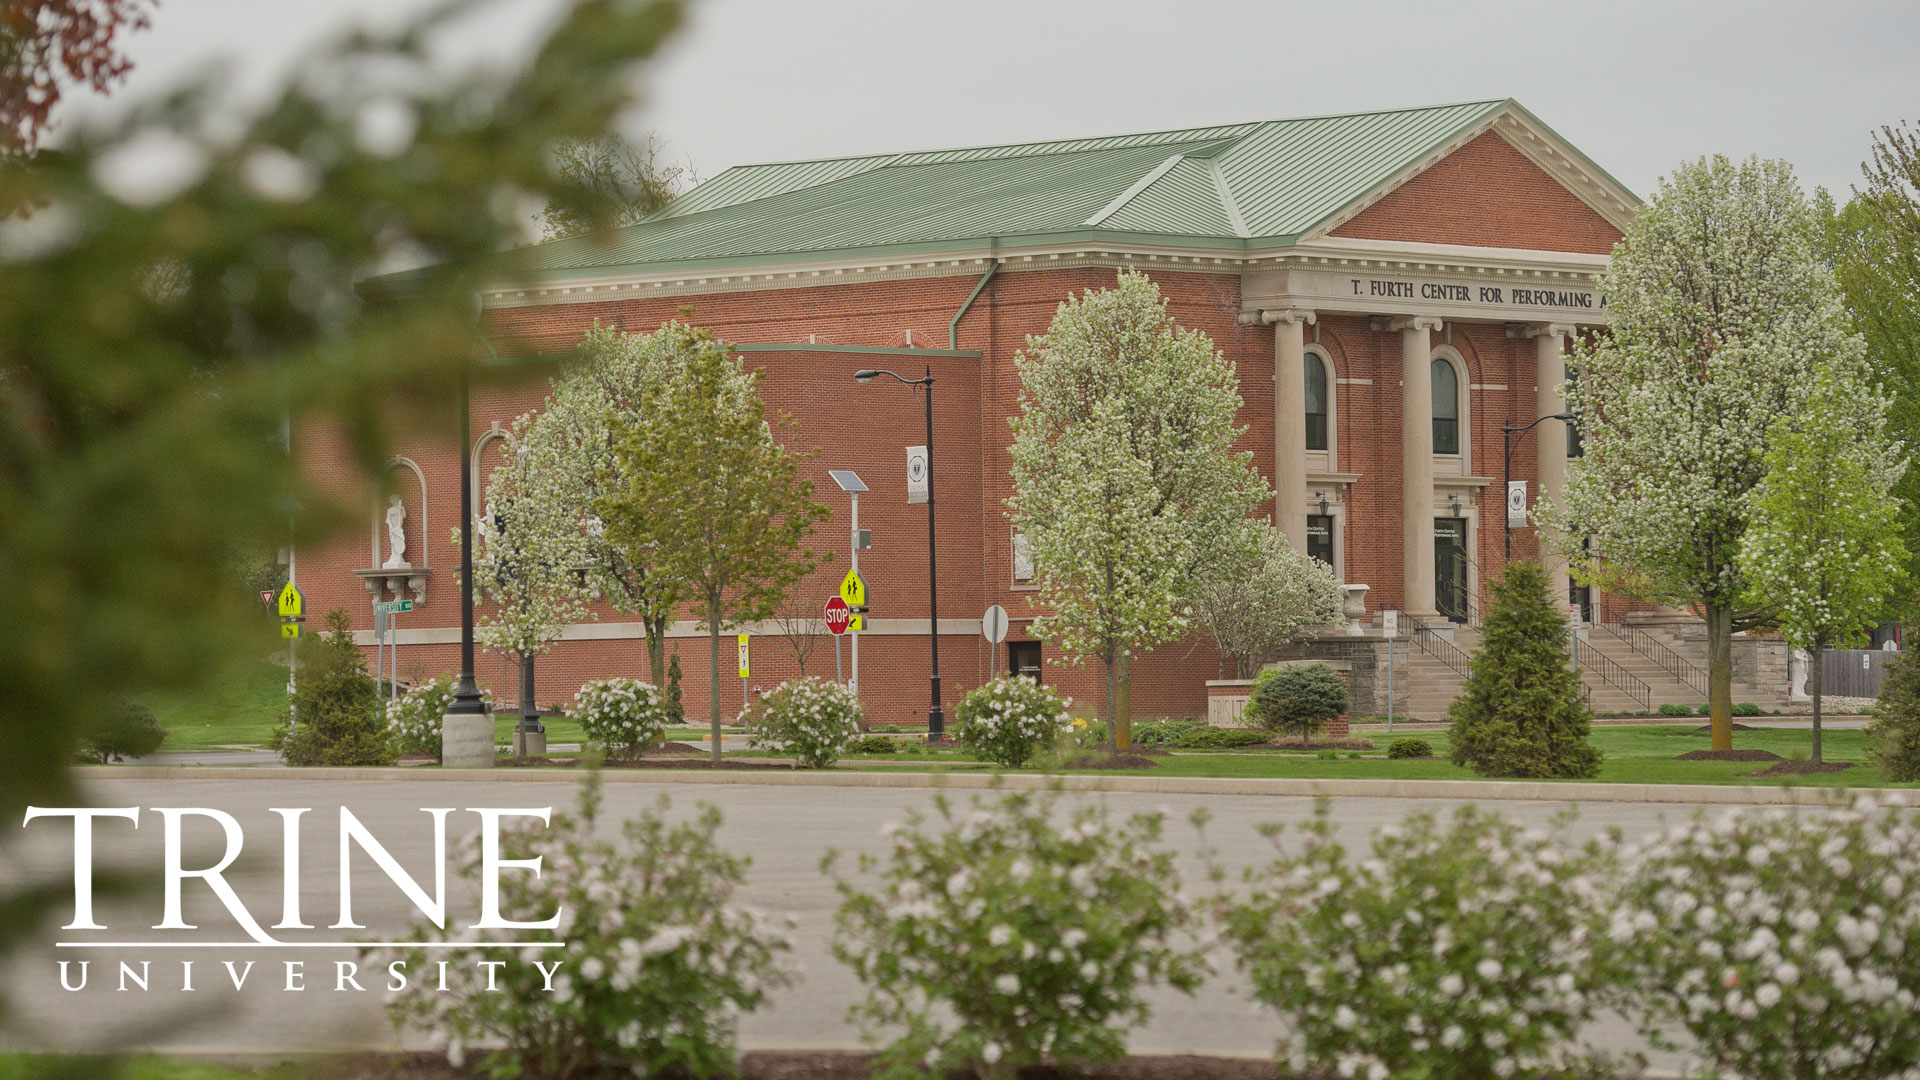 T. Furth Center - Trine University